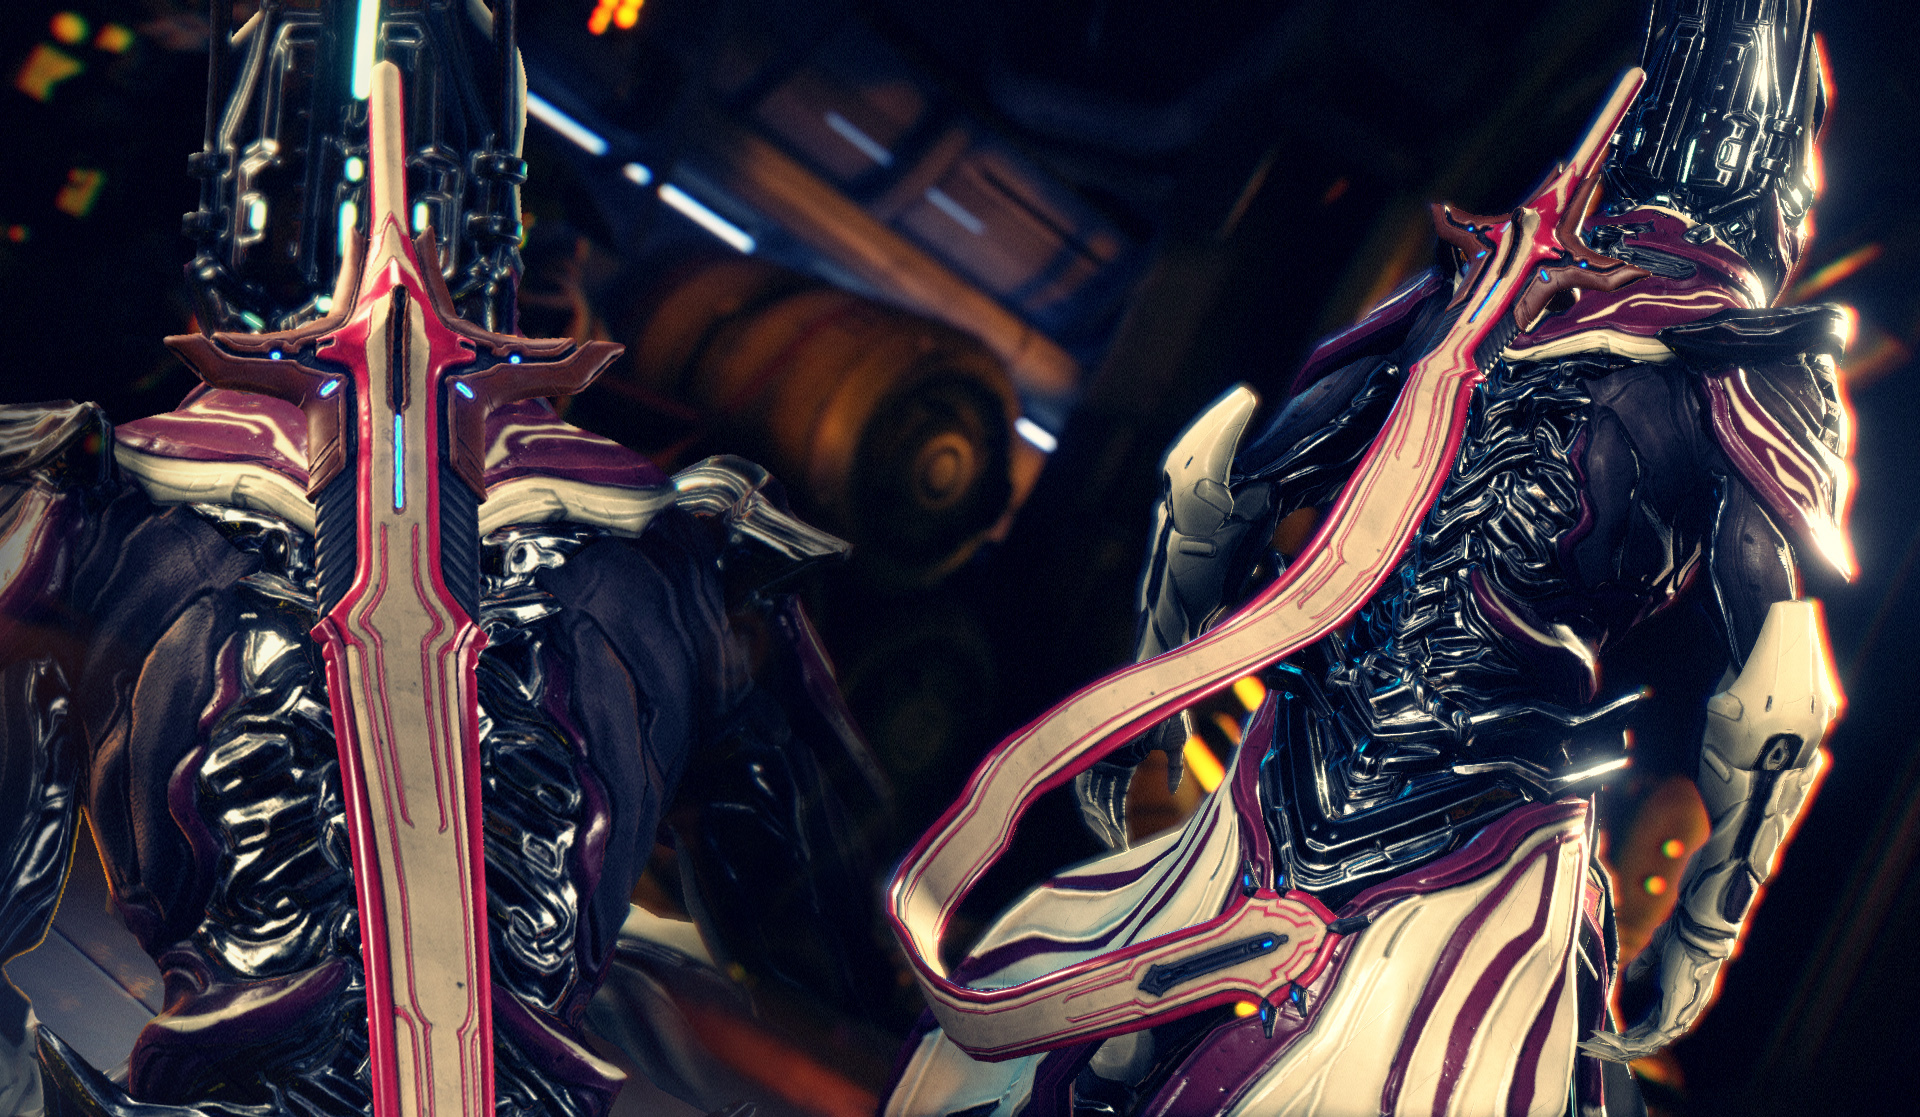 Jul 4, 2017 Digital Extremes reveals Warframe drop rates